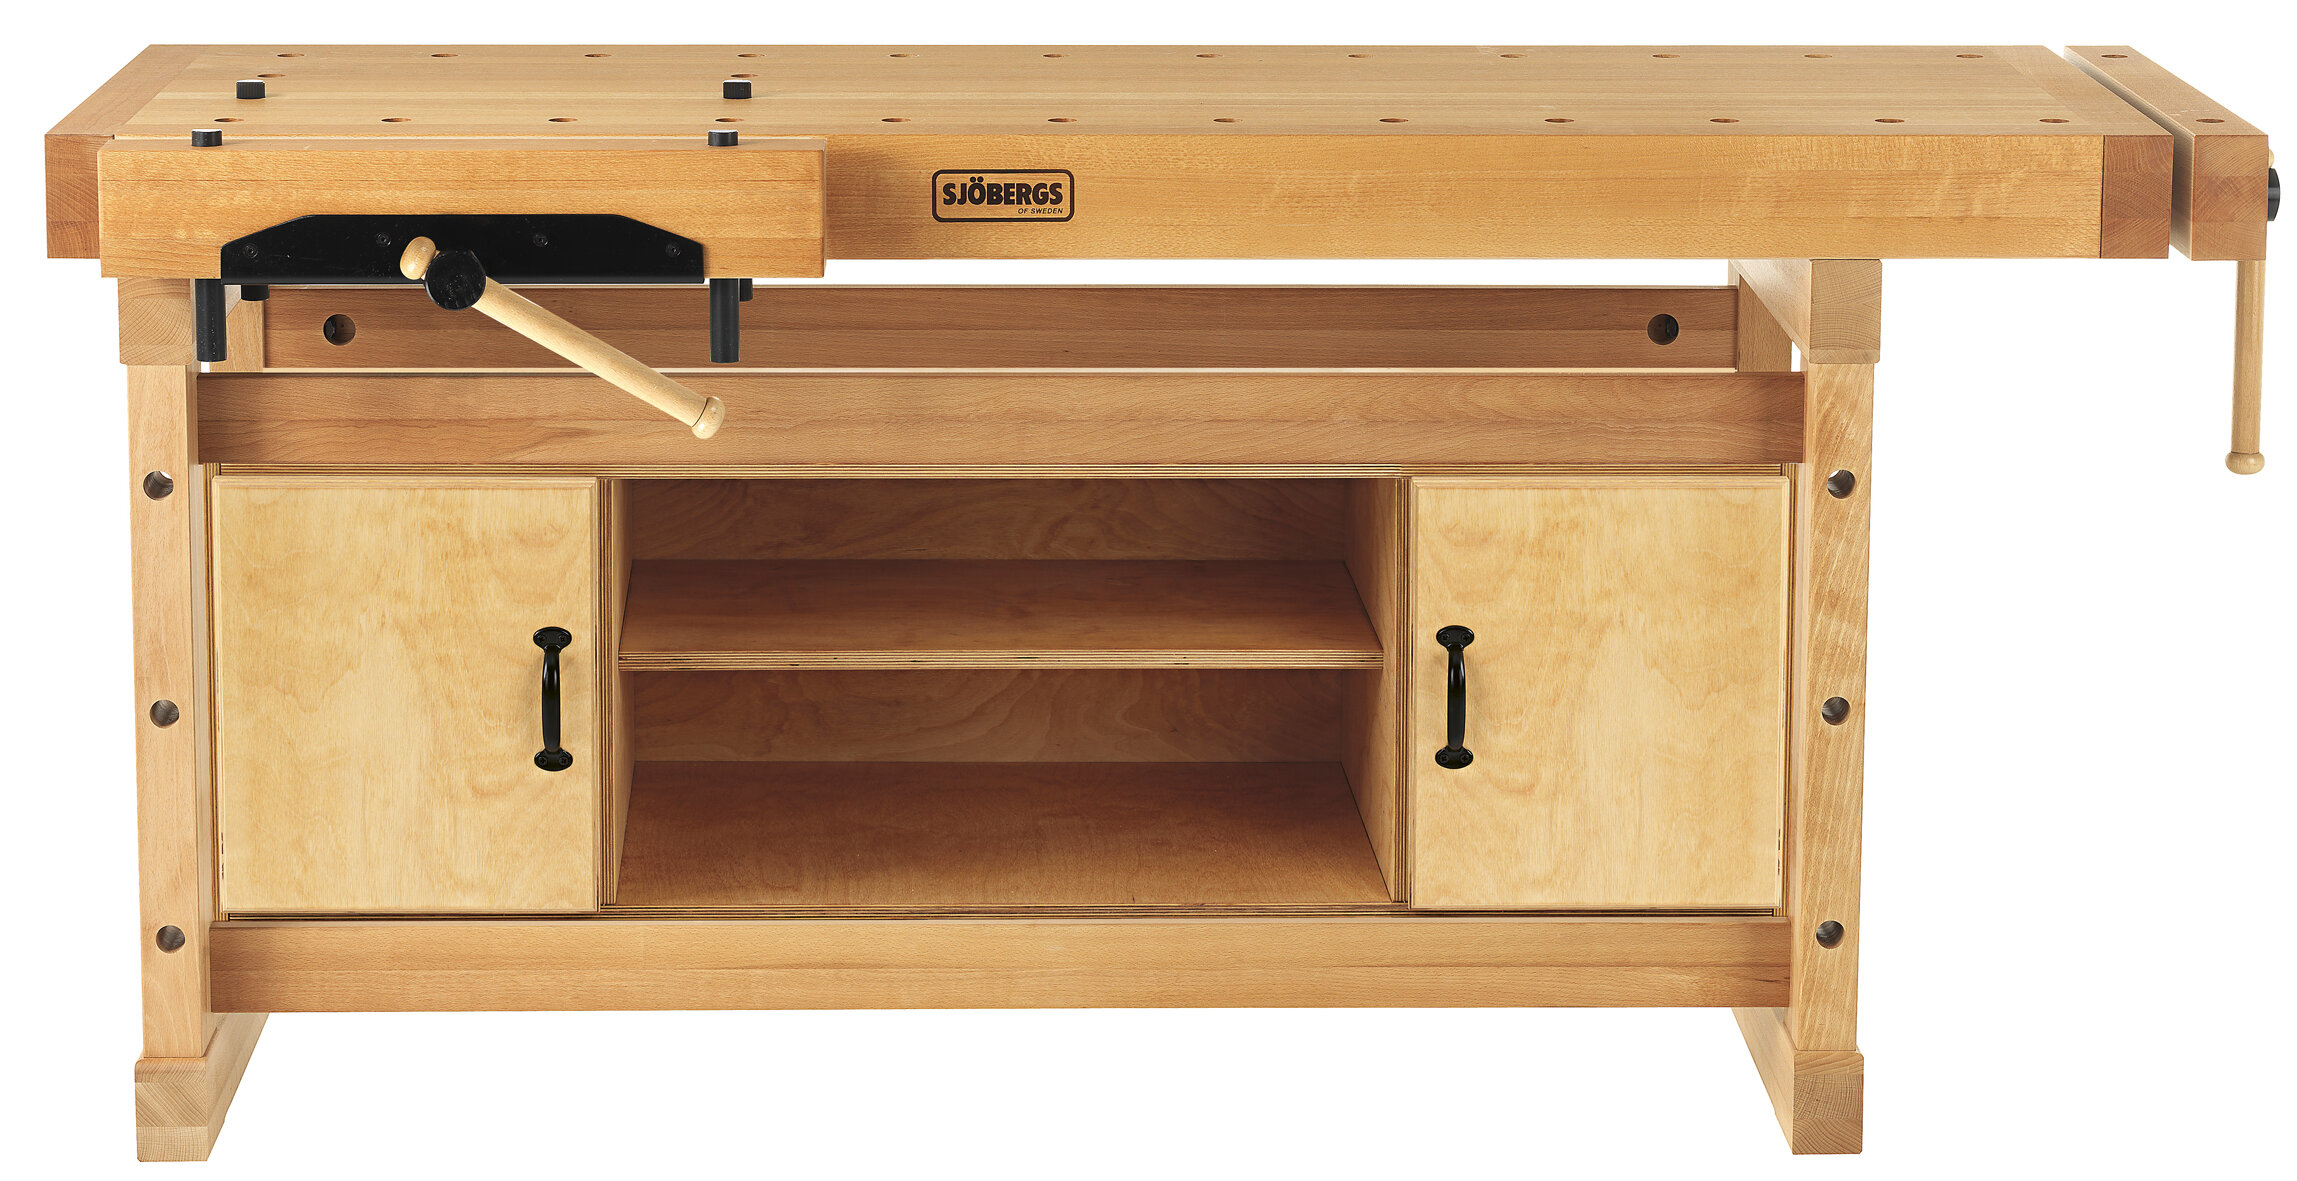 on with shop cabinet best and accessory woodworking plus images scandi pinterest rockler bench sjobergs dream workbench kit